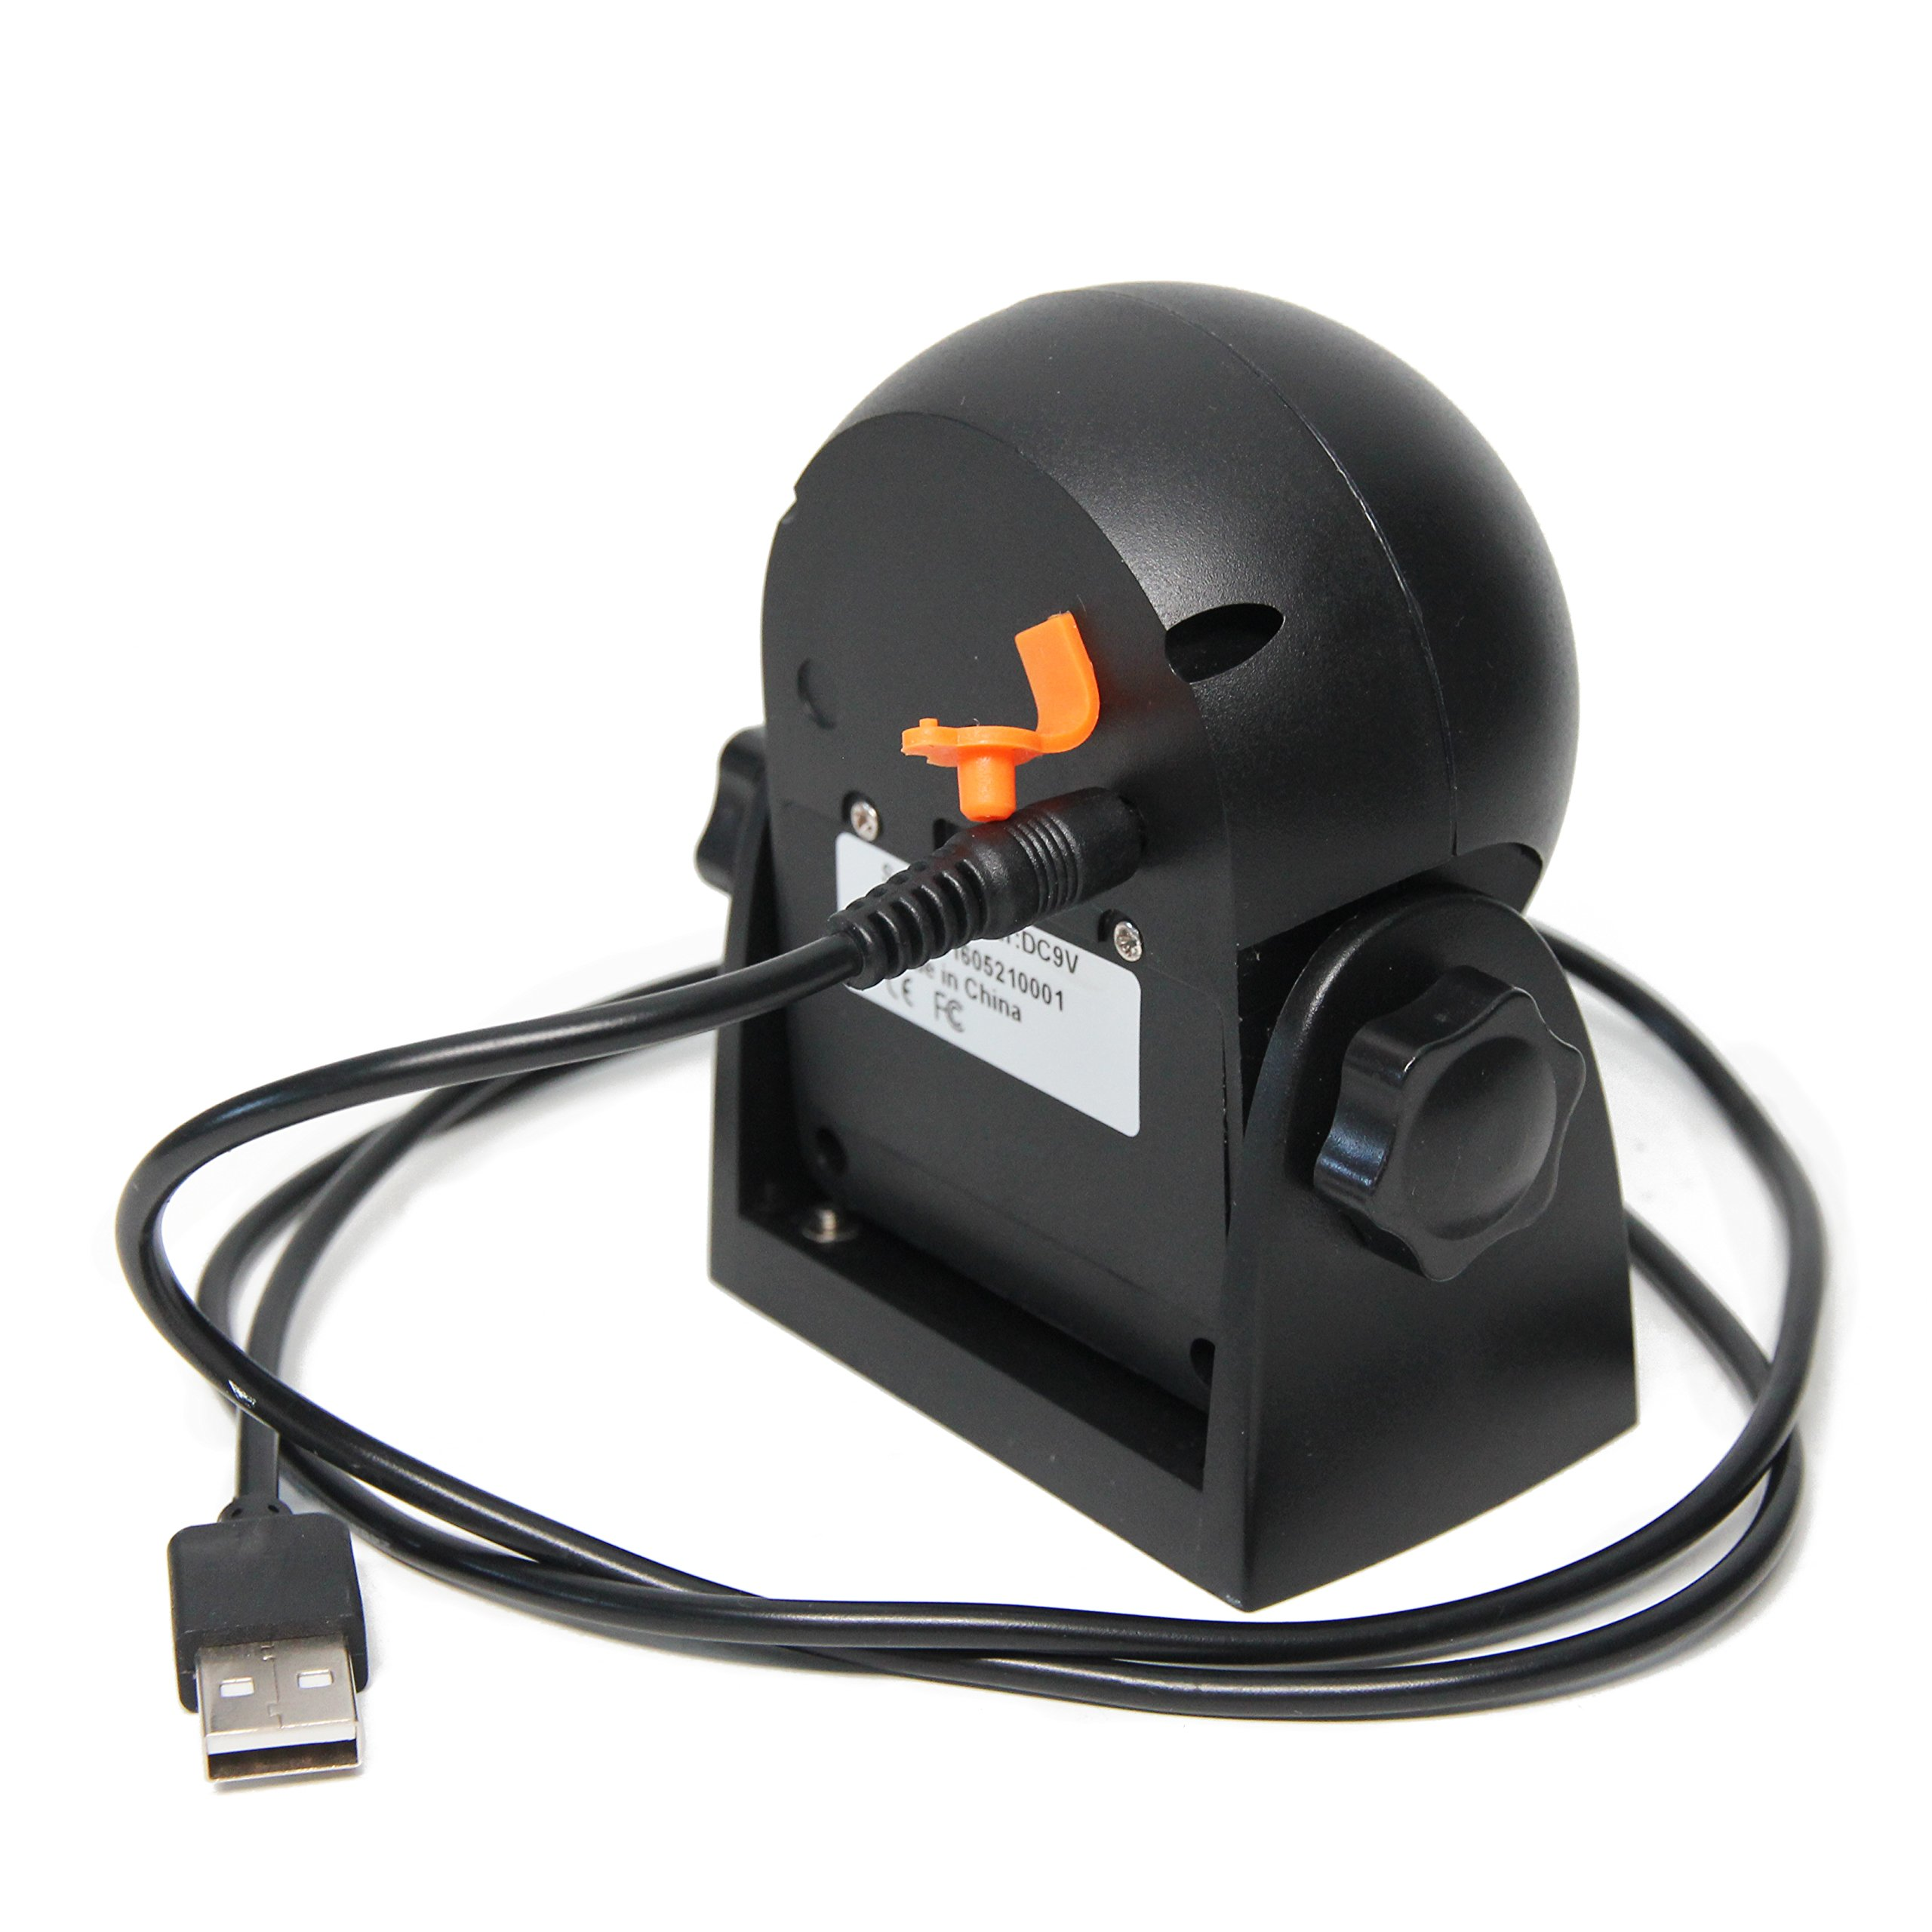 Wireless Hitch Camera with Rechargeable Battery by Rear View Safety by Rear View Safety (Image #4)